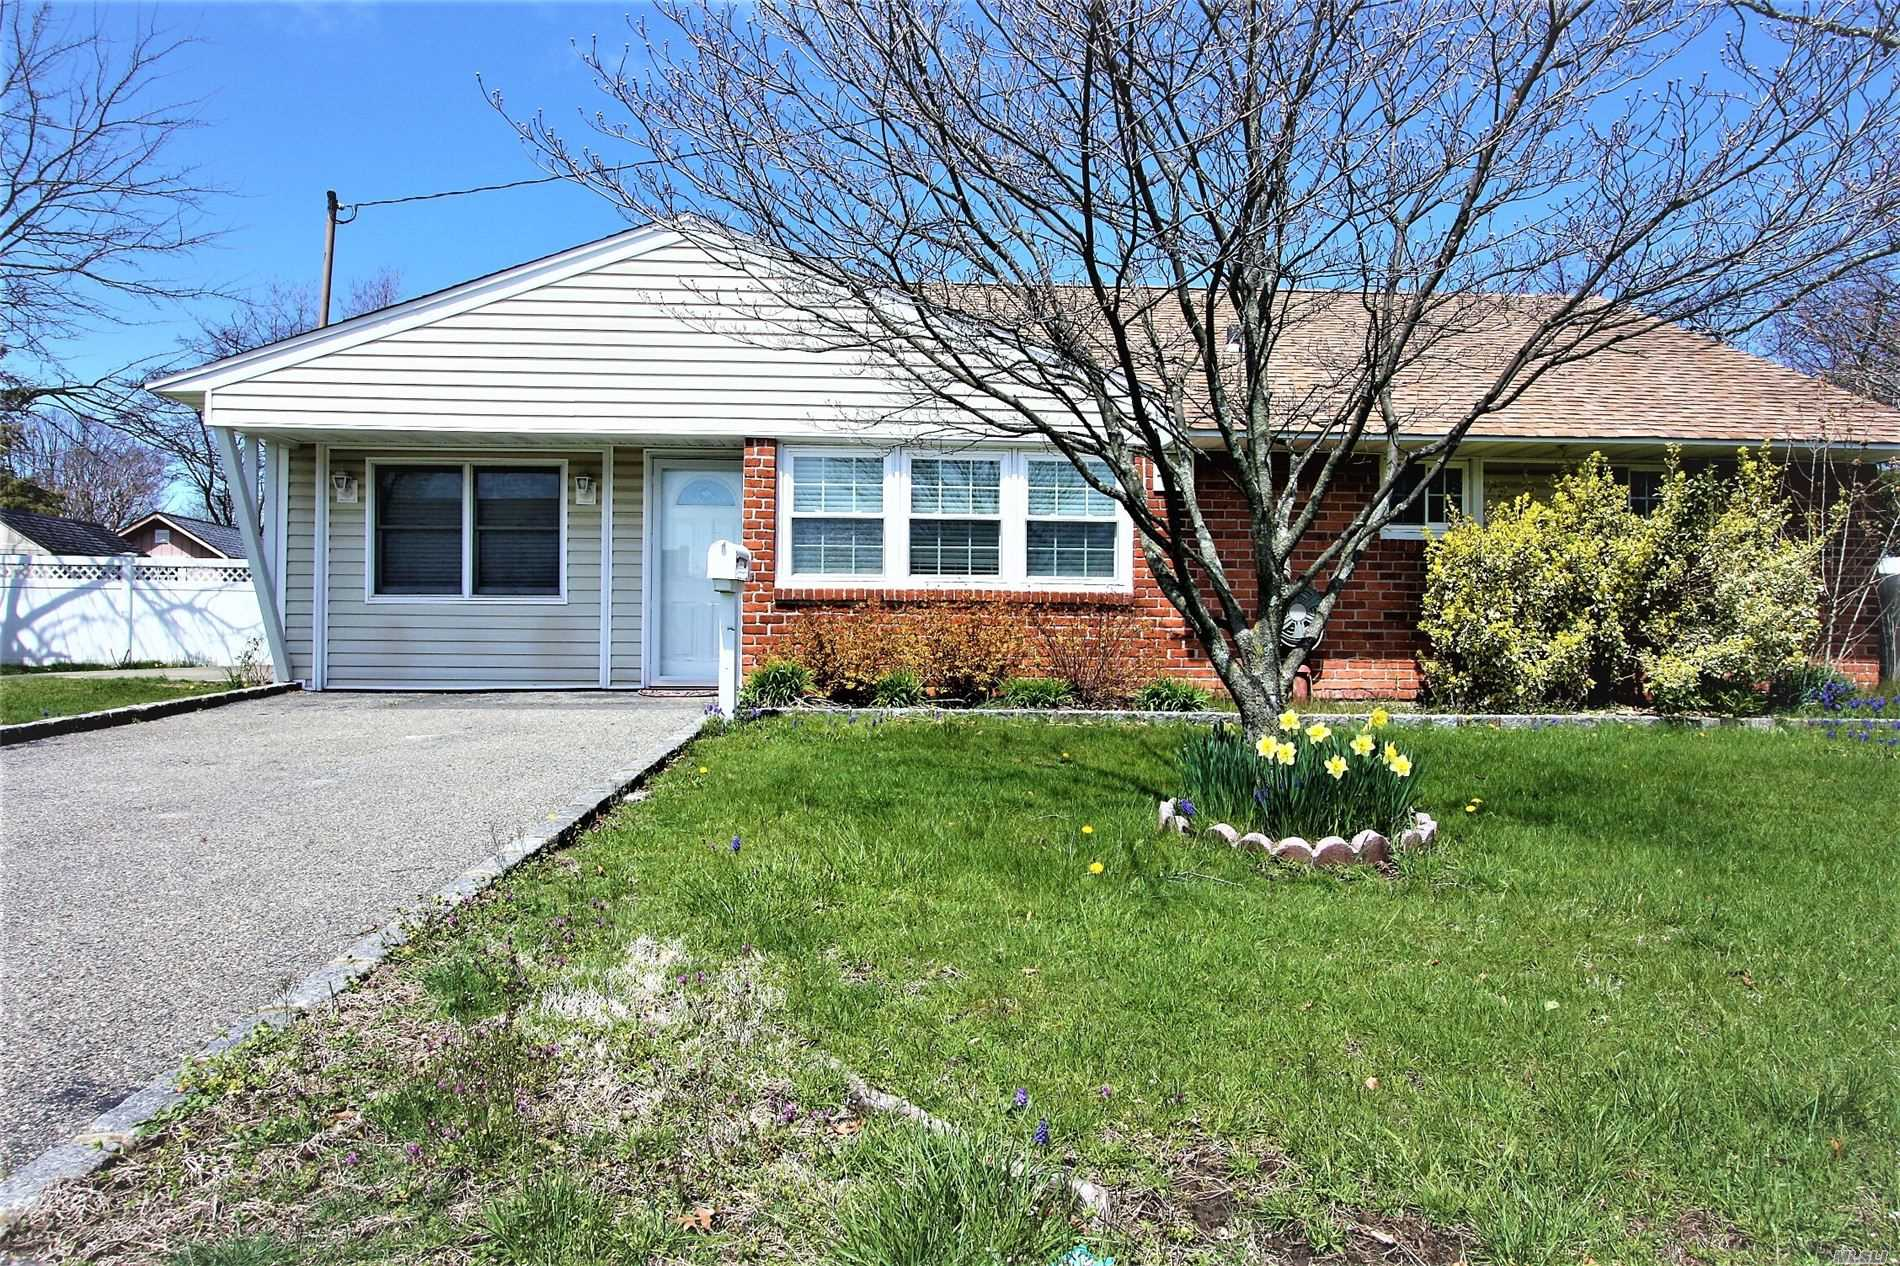 160 6th St 11801 - One of Hicksville Homes for Sale